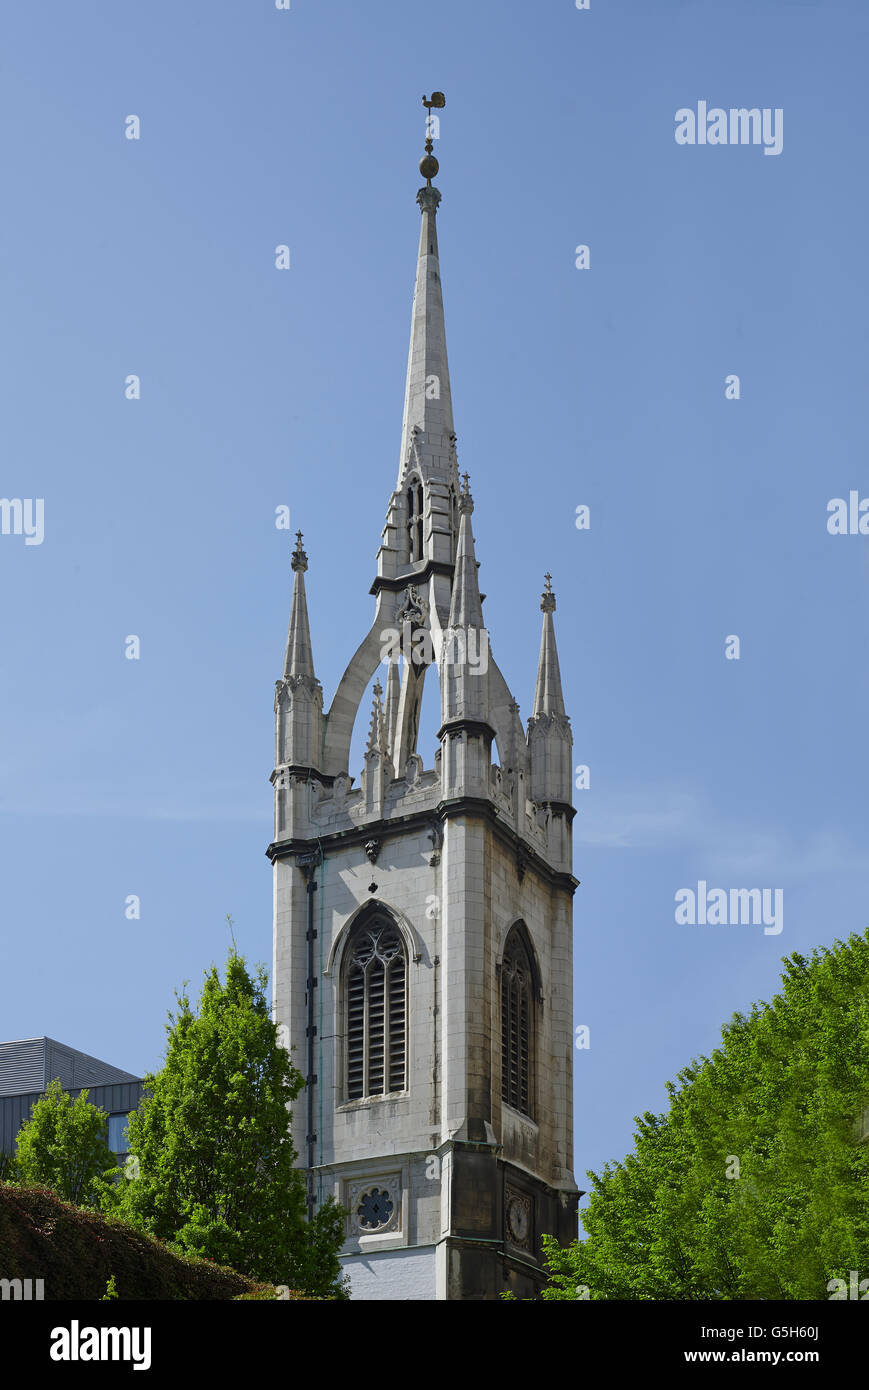 St Dunstan in the East, Church in the City of London. The needle spire with flying buttresses. - Stock Image